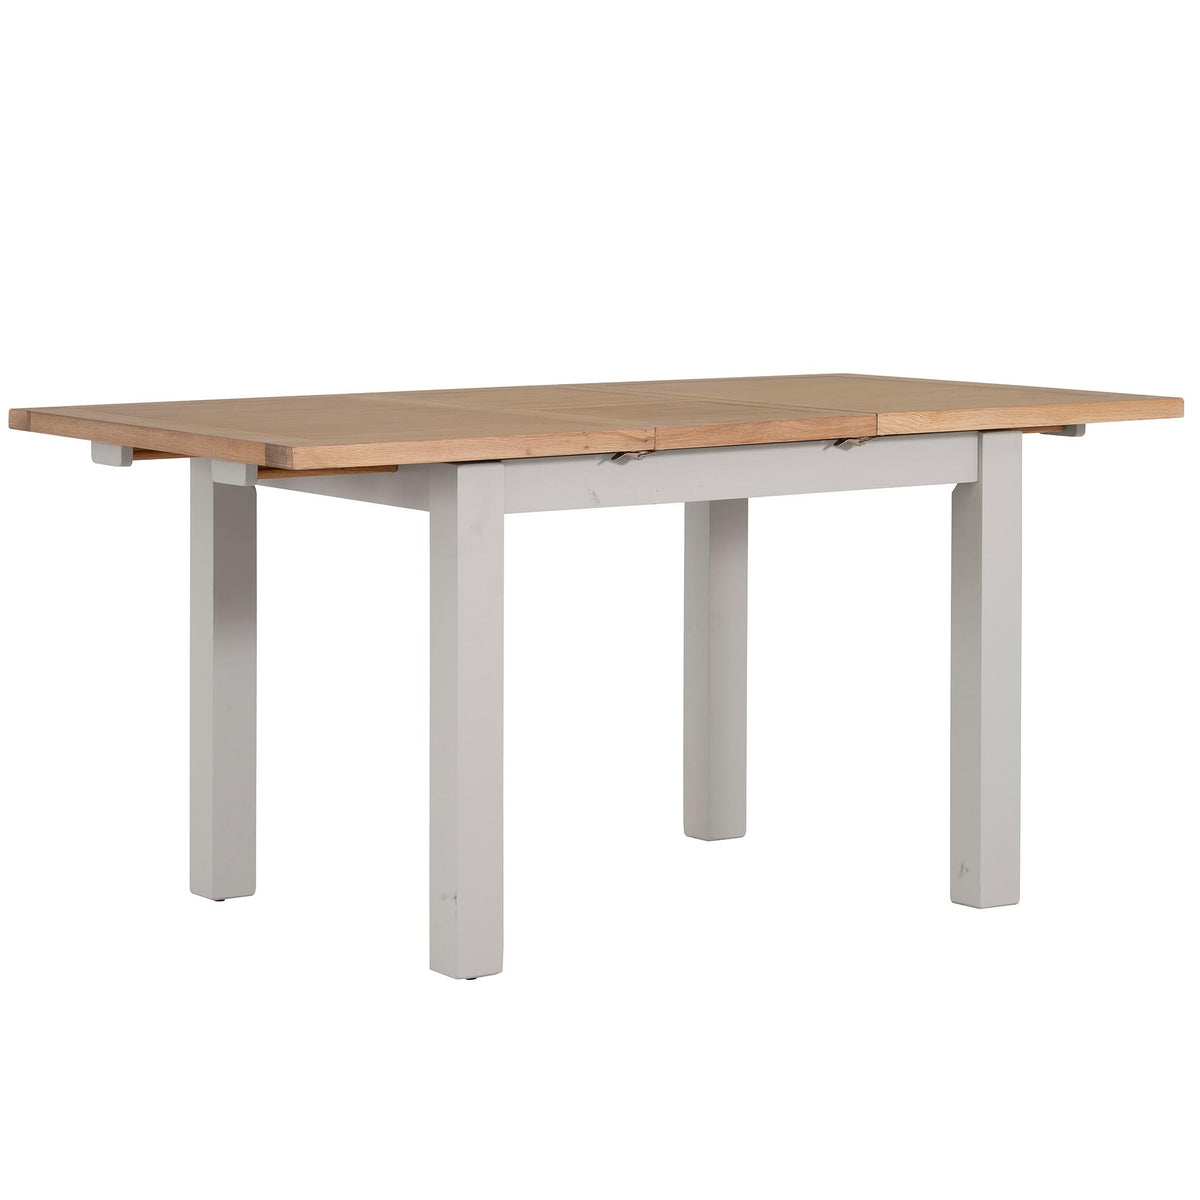 Charlestown Grey Extendable Dining Table from Roseland Furniture